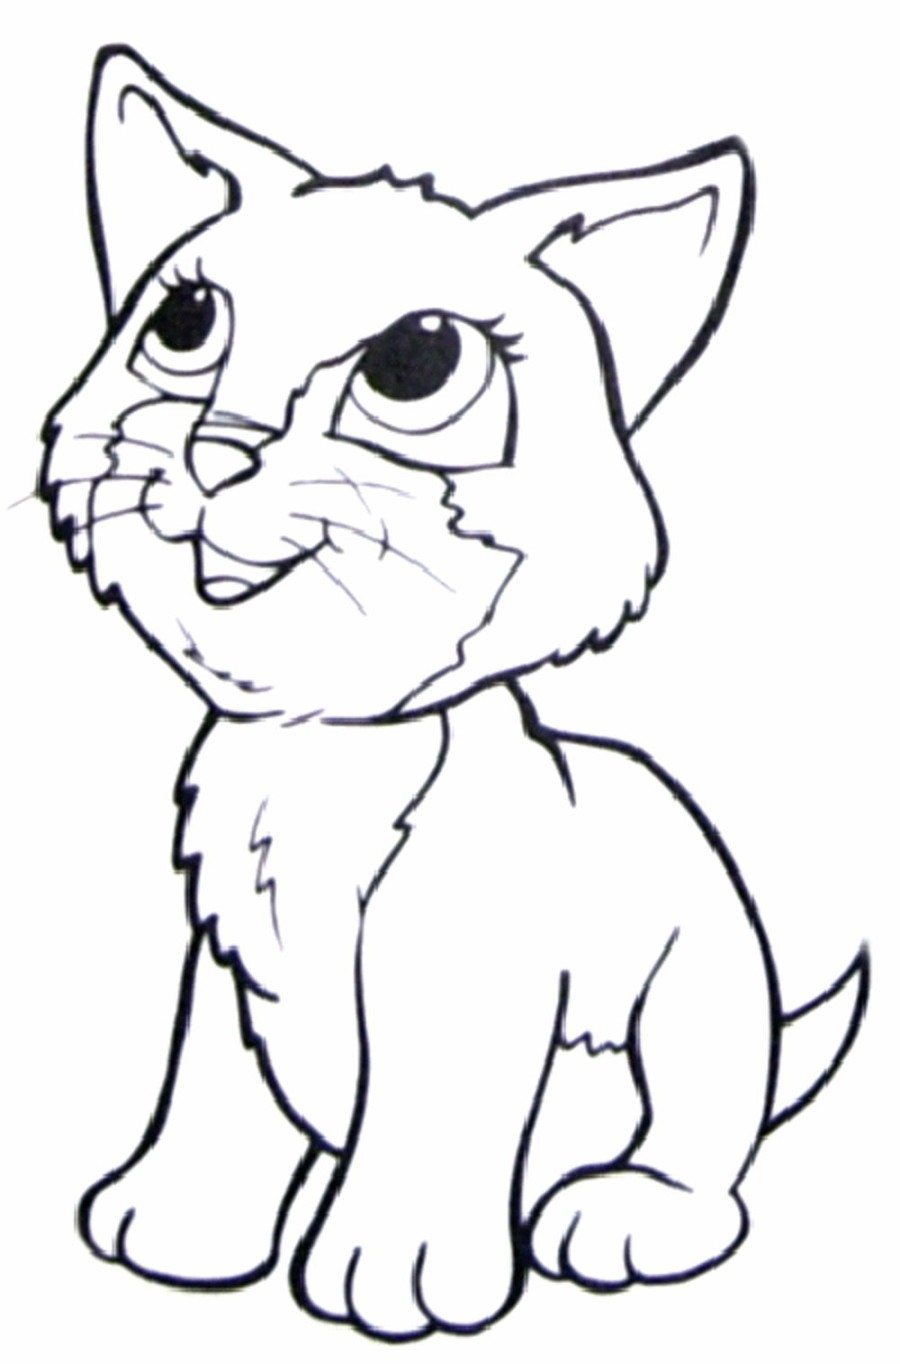 Happy Cat Drawing at GetDrawings.com | Free for personal use Happy ...